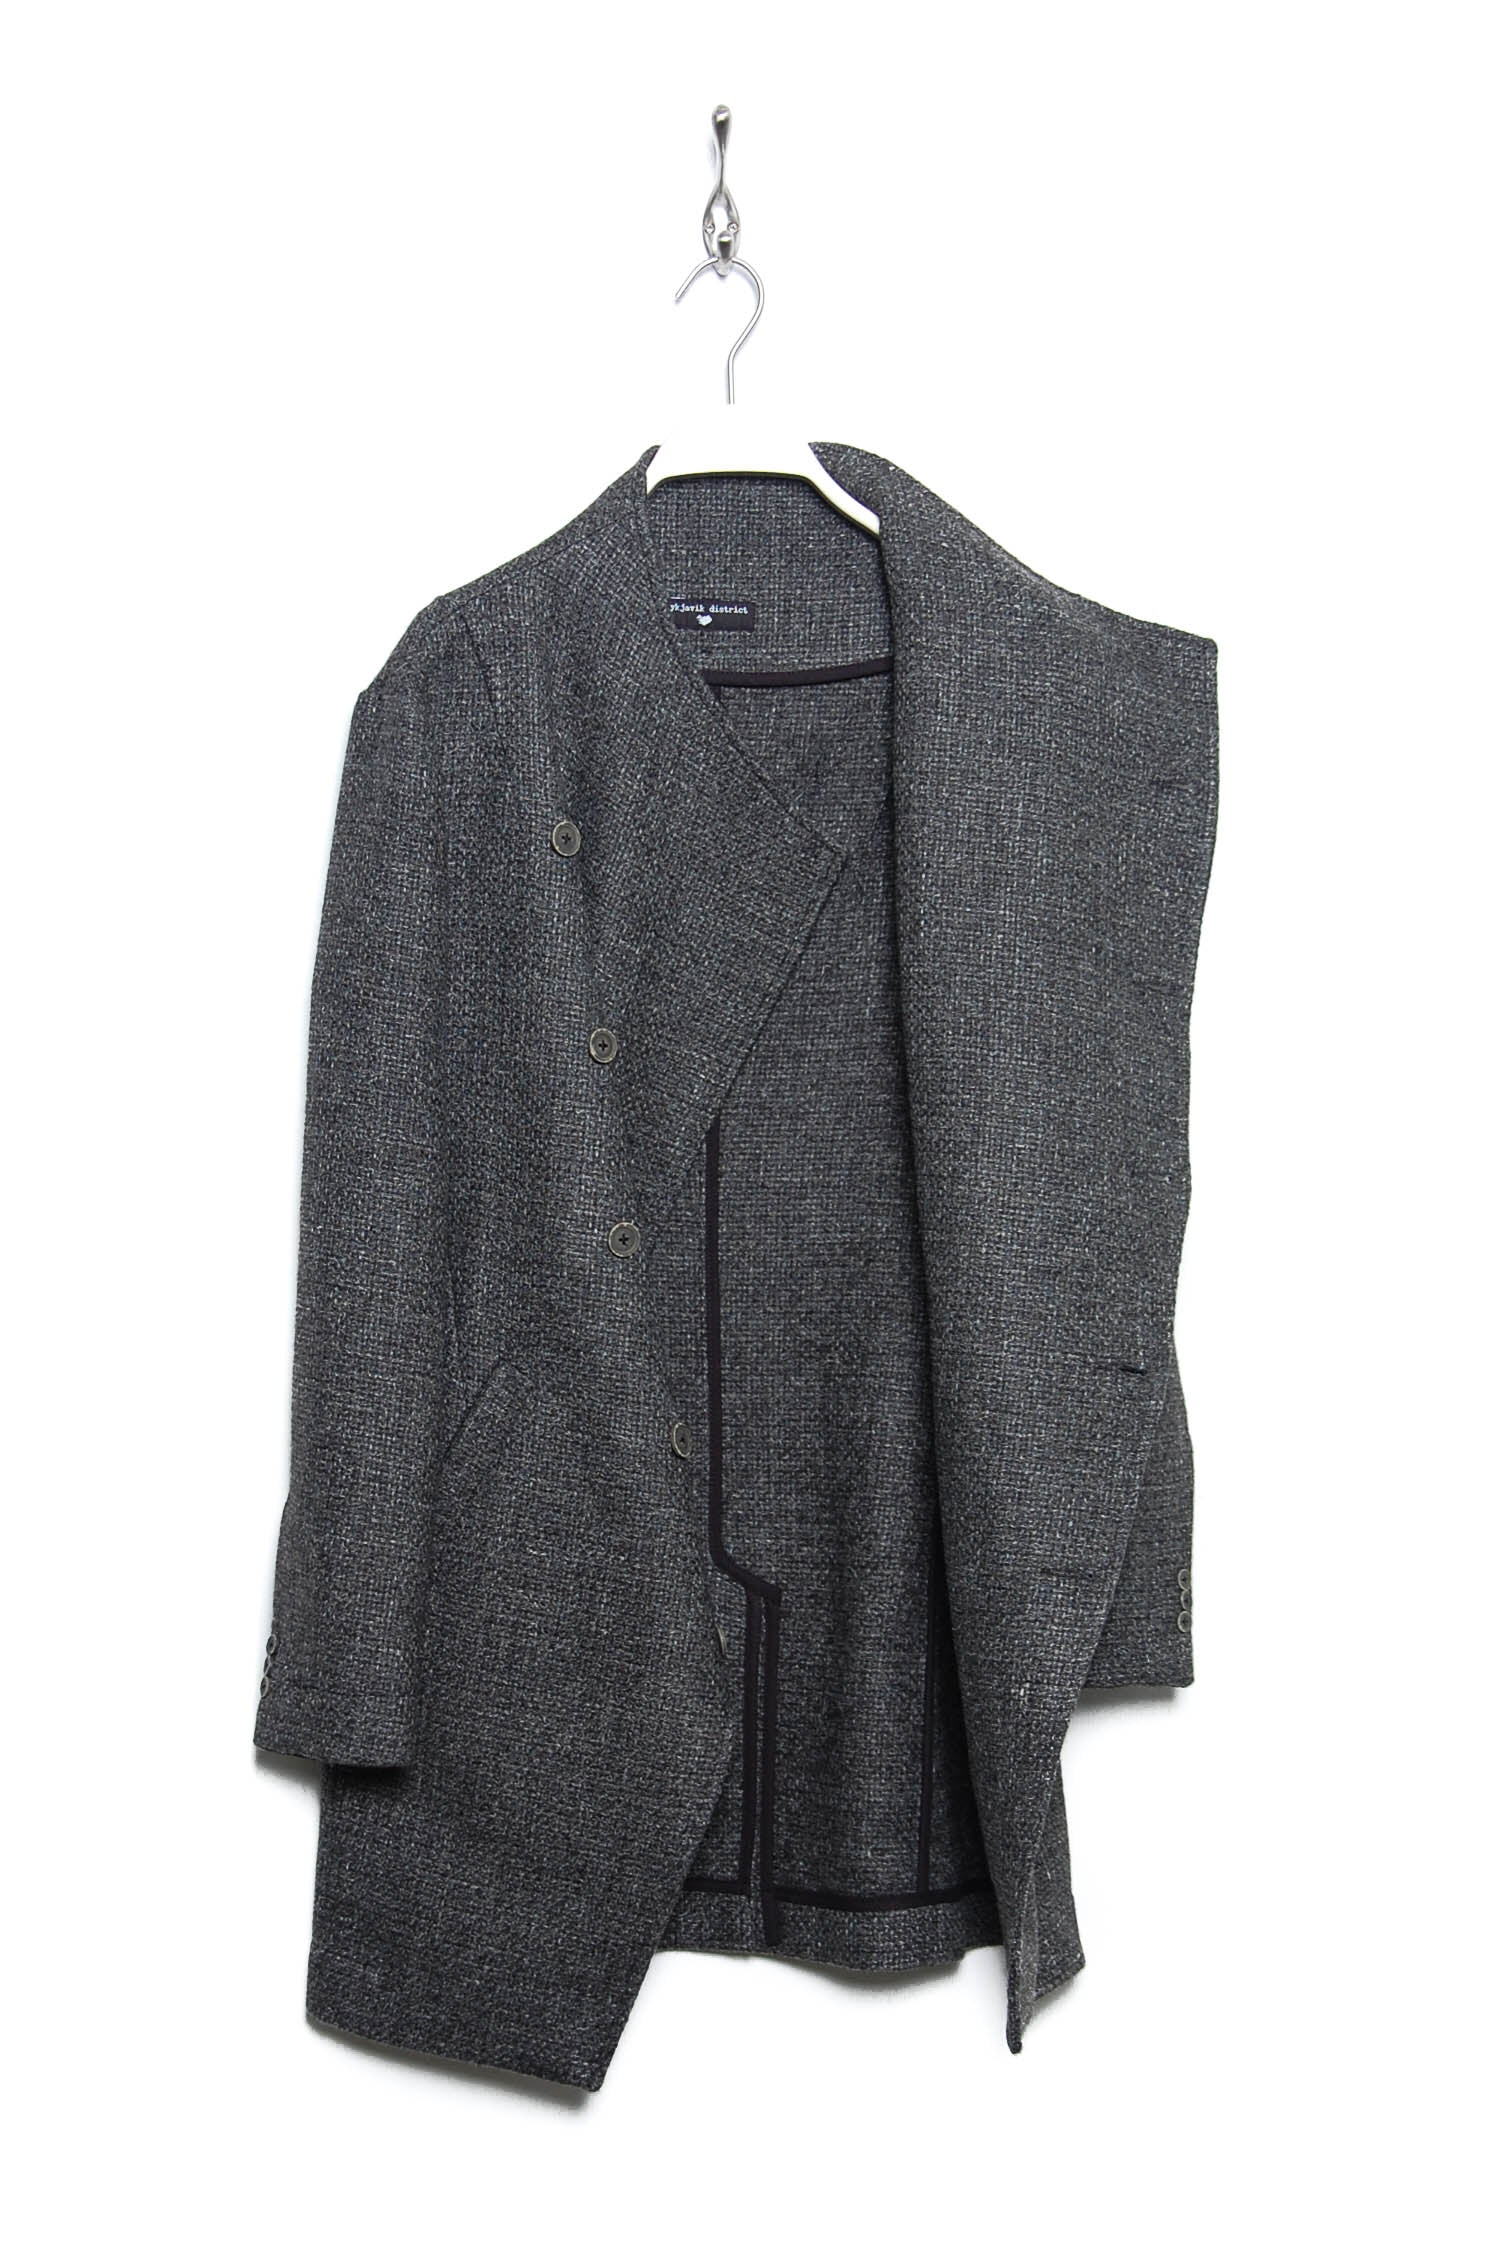 Reykjavik District Hamlet Coat grey tweed